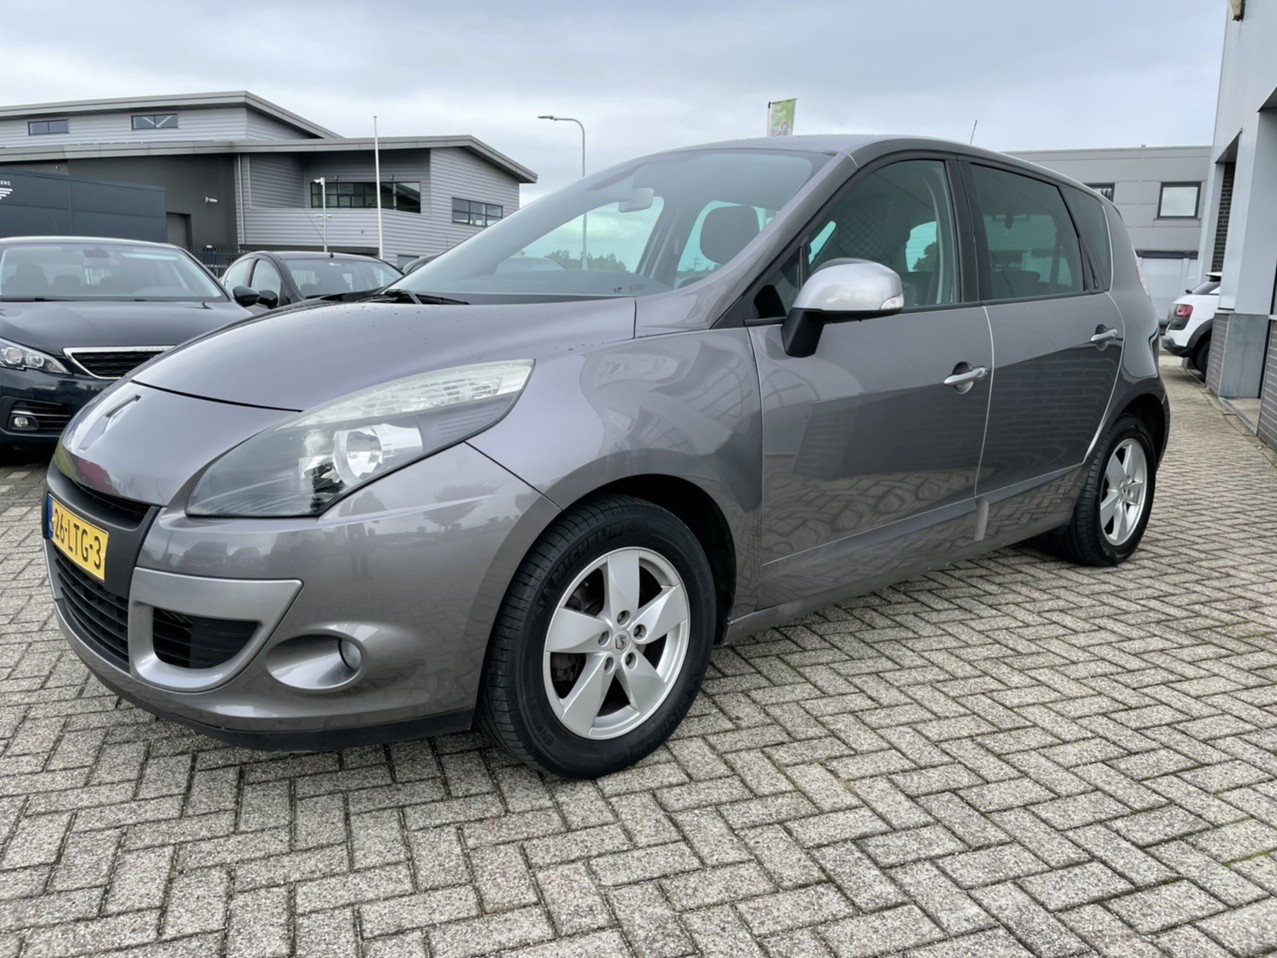 Renault Scénic 1.4 tce 96kw